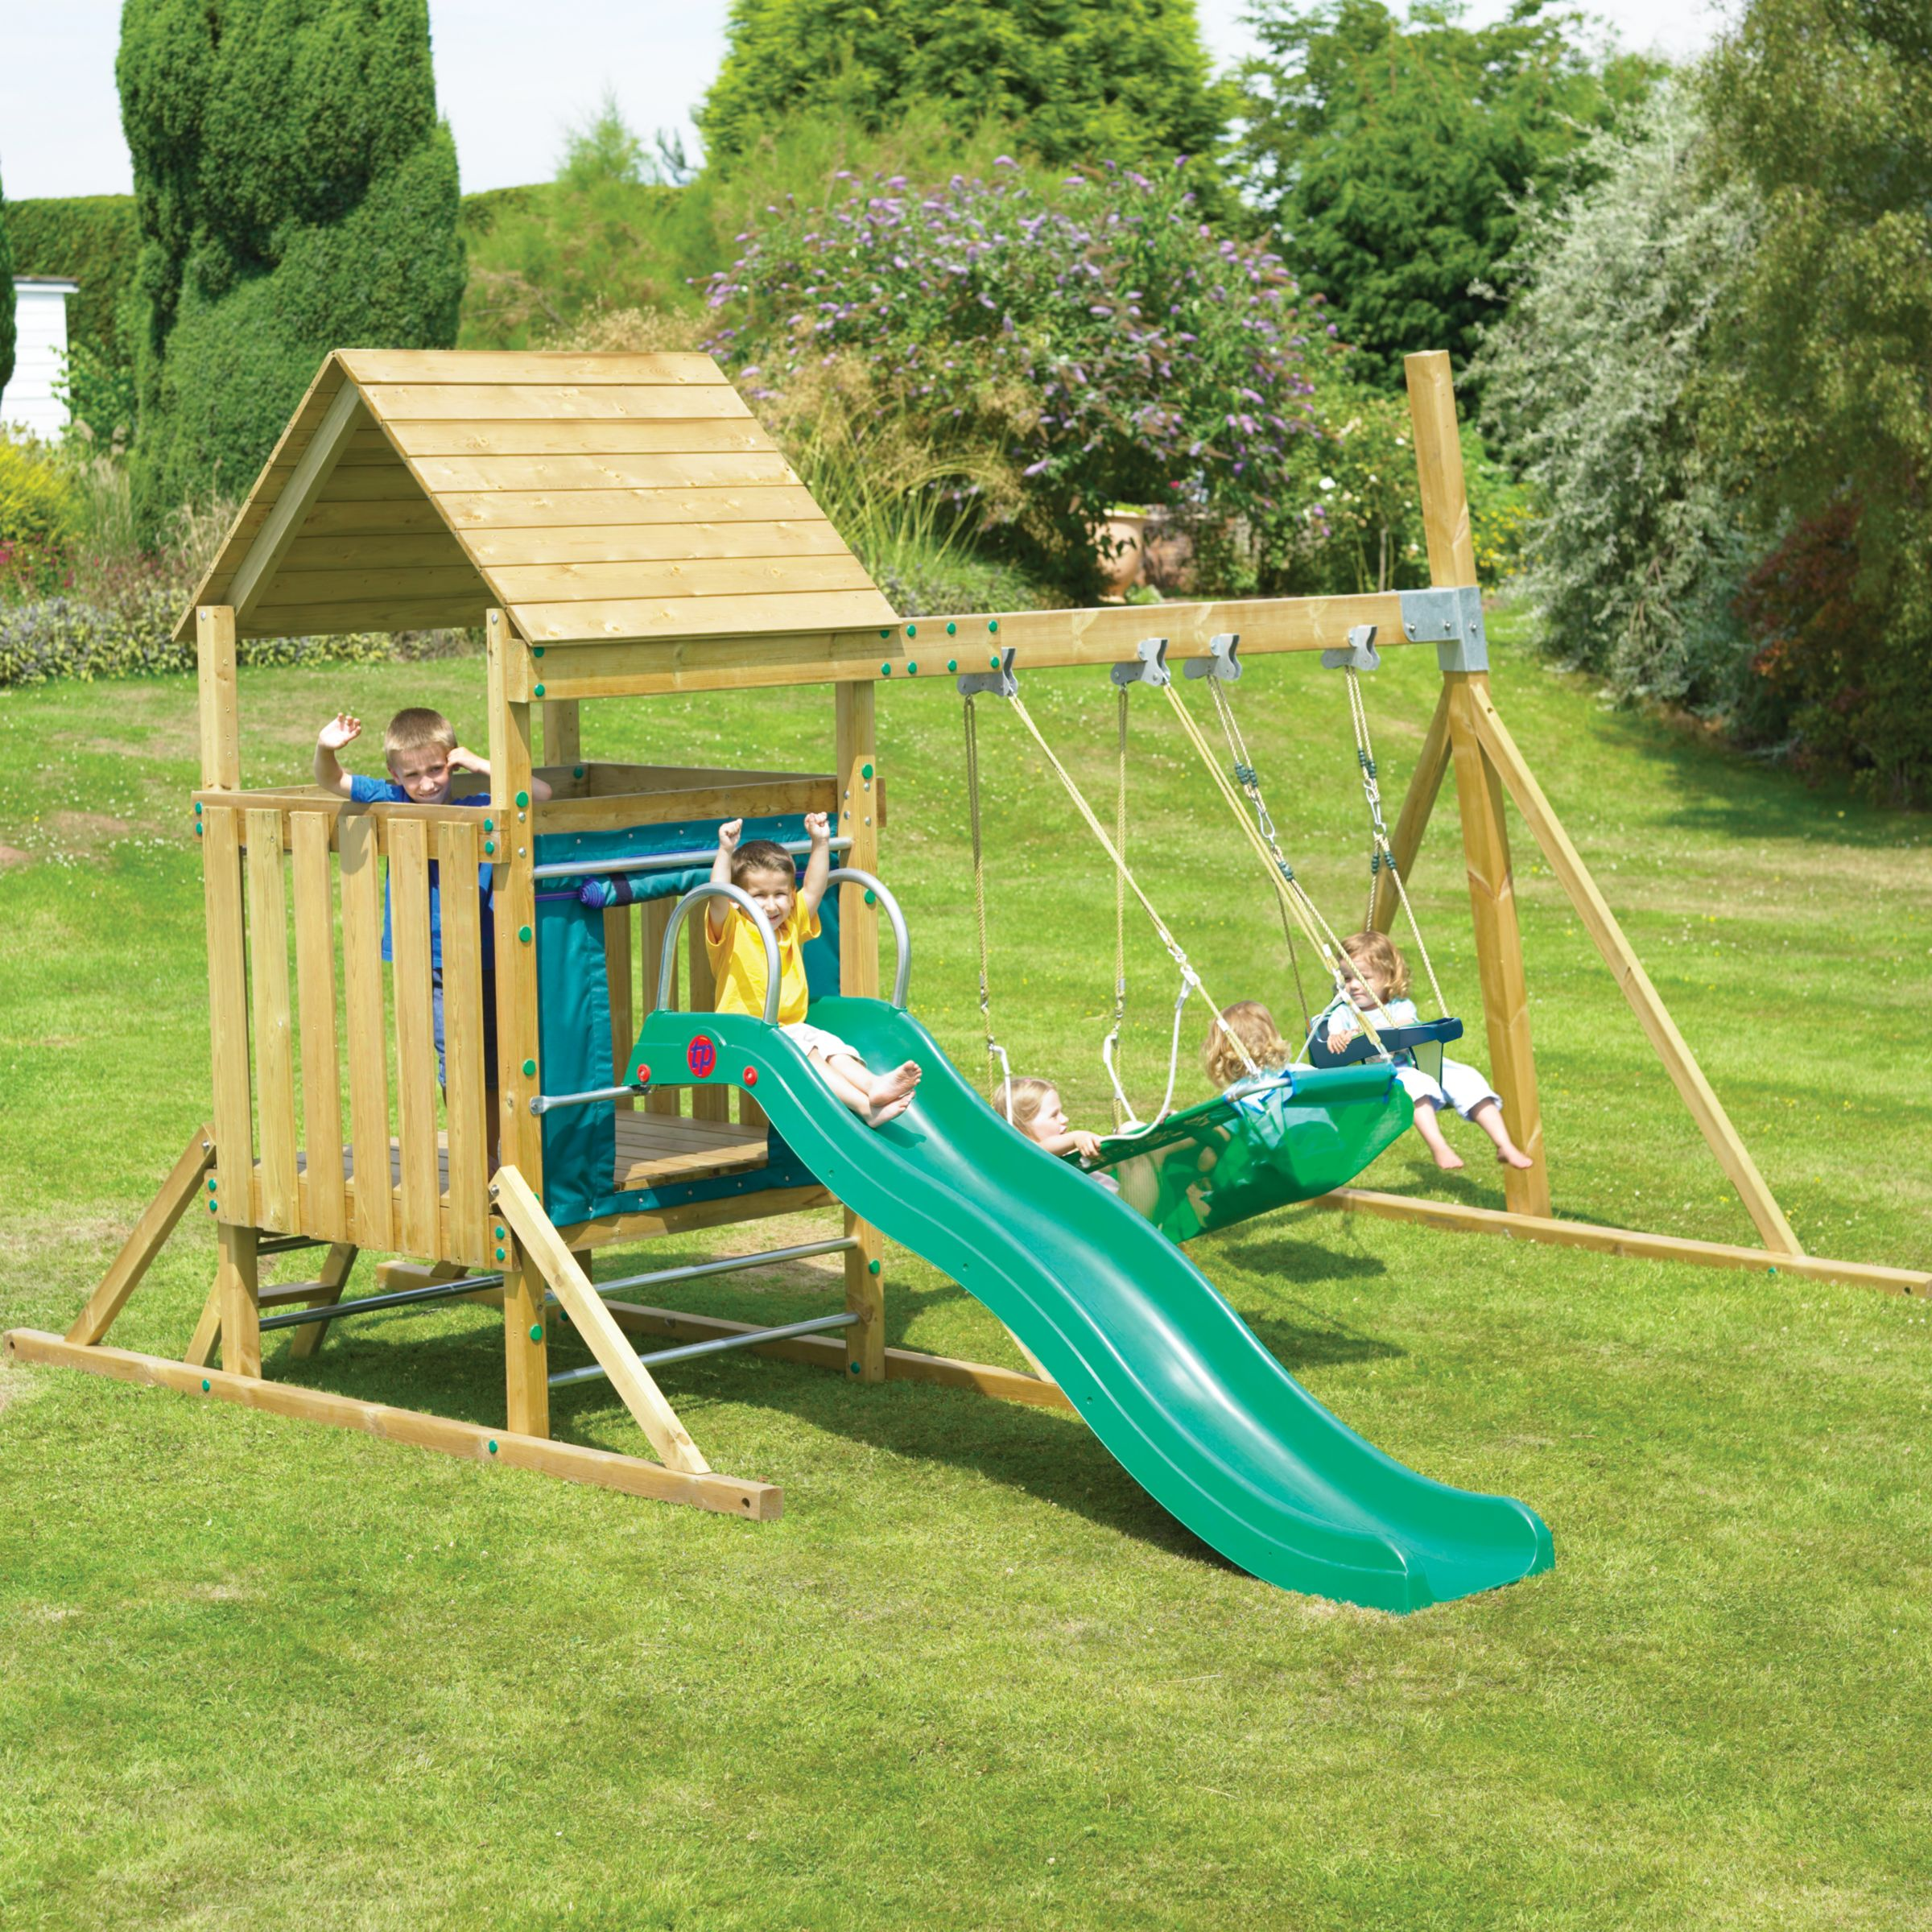 TP Kingswood Low Tower and Swing Set